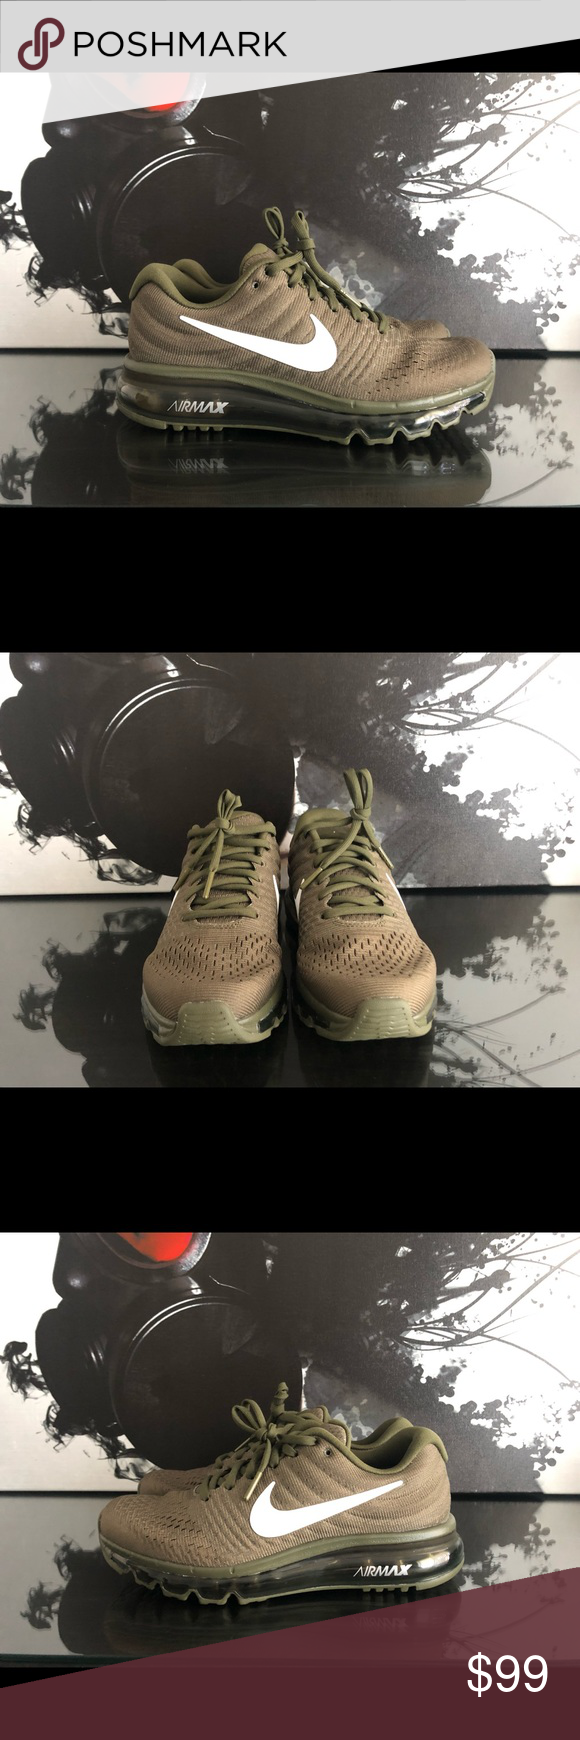 online retailer 2d9f5 65697 WOMENS NIKE iD AIR MAX 2017 OLIVE GREEN | NEW 🔘 Shoes are ...